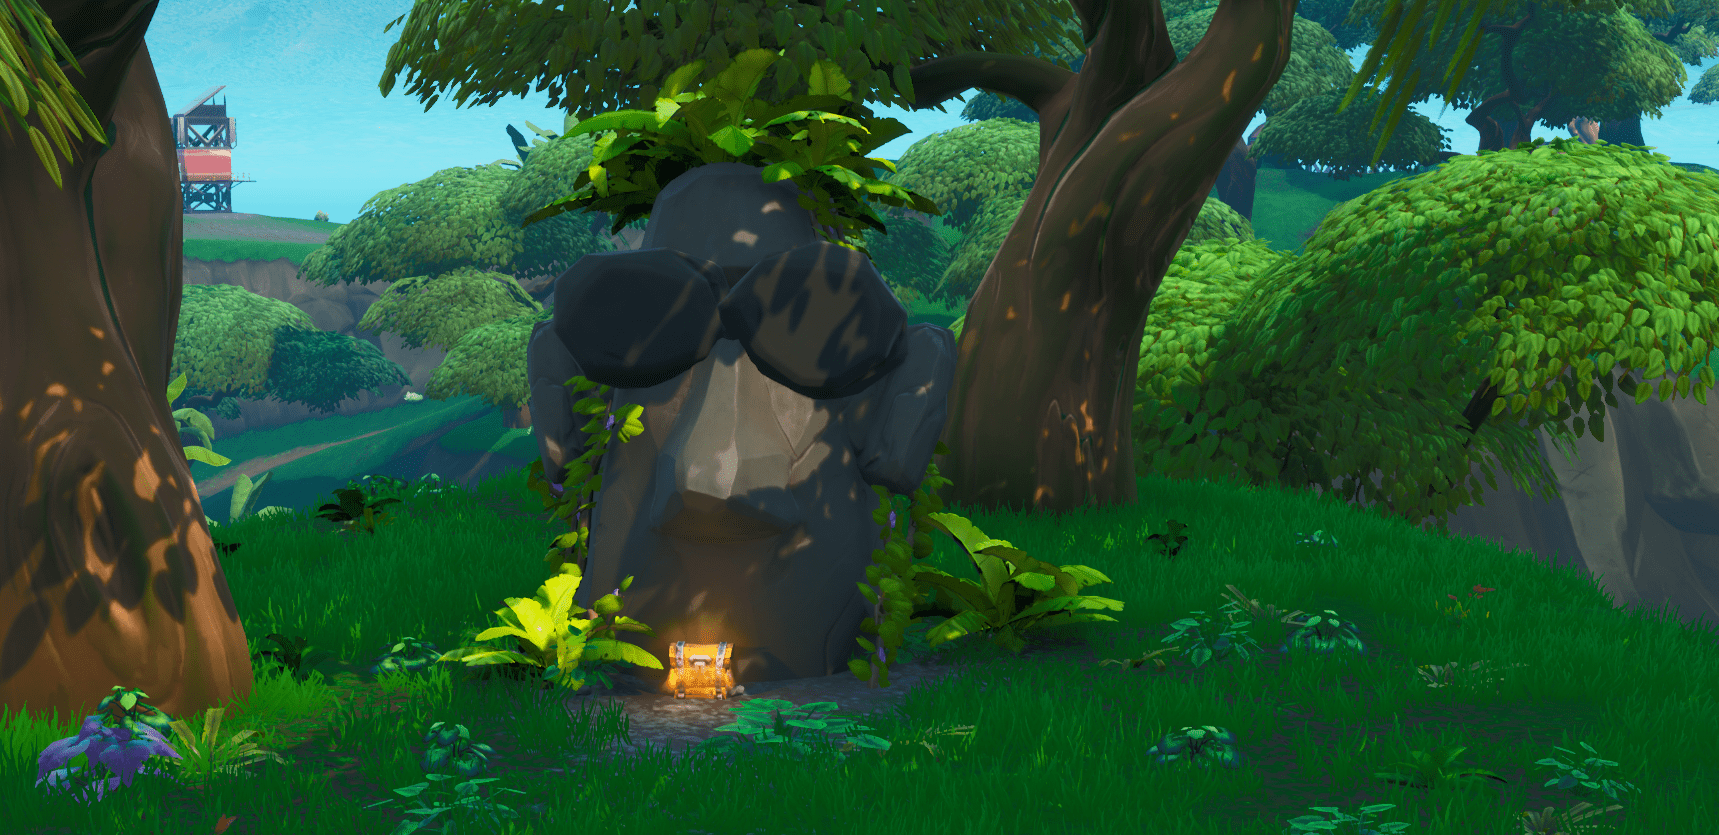 Fortnite Season X (v10.00) Map Changes - Stone Head Has Returned